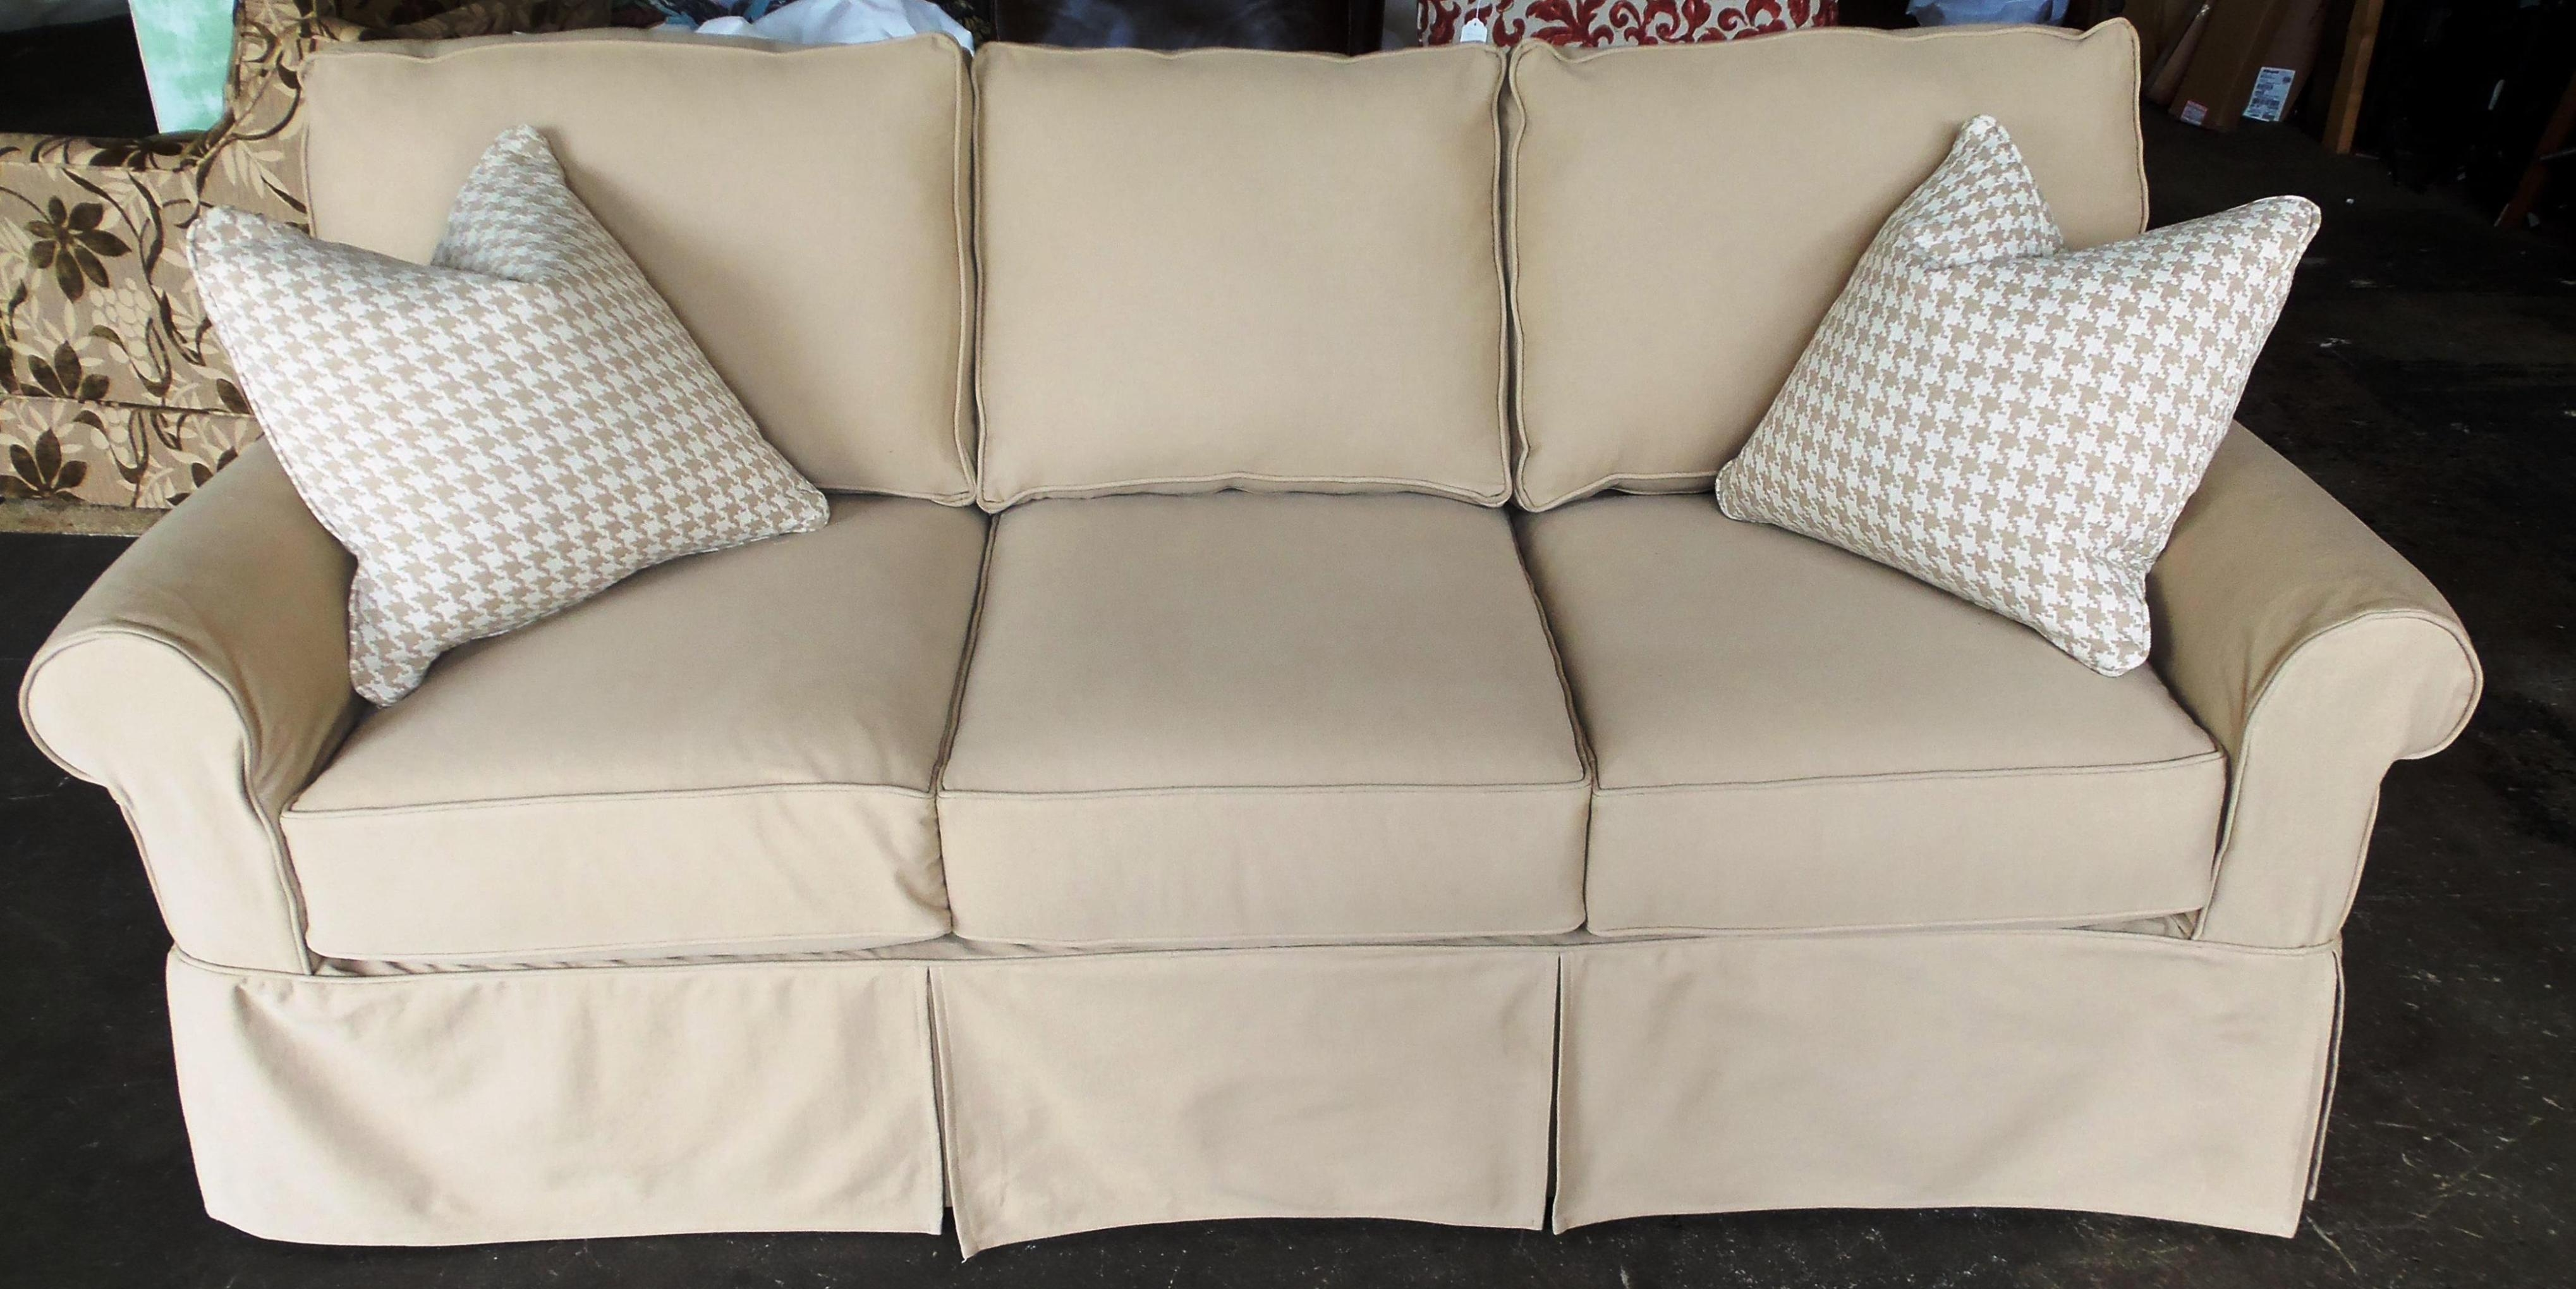 3 Piece Loveseat Slipcover : Doherty House - Contemporary Loveseat in Loveseat Slipcovers 3 Pieces